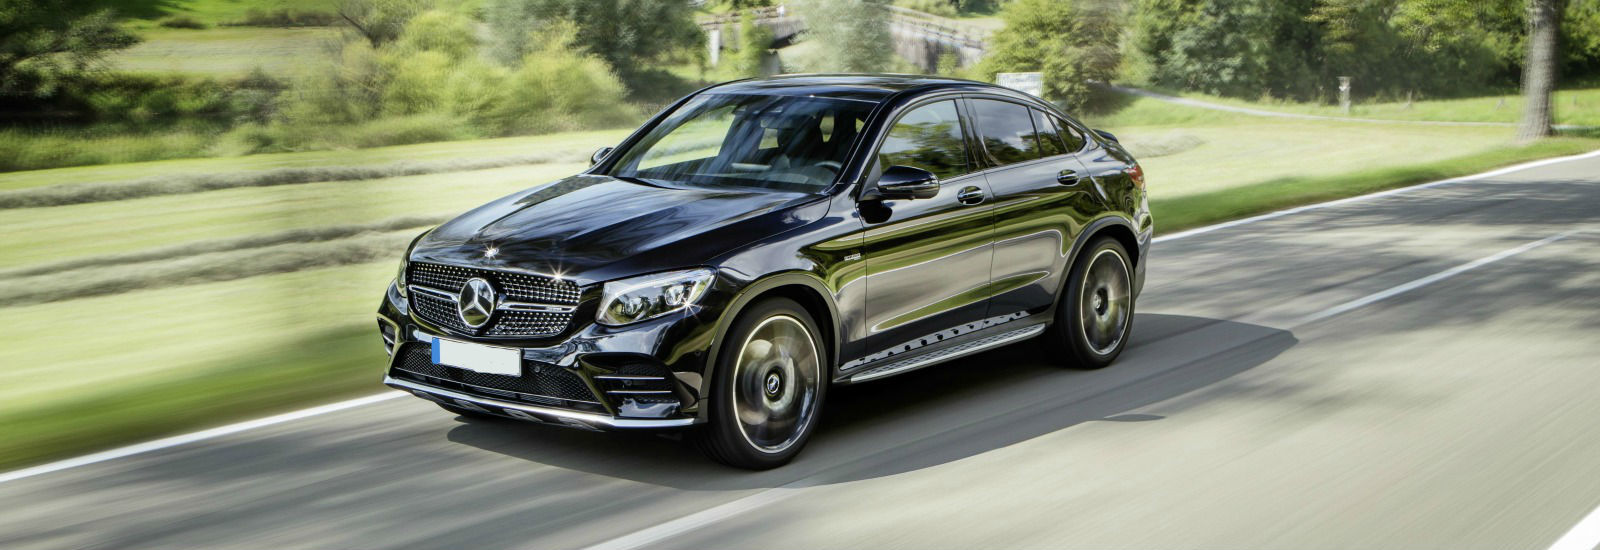 Mercedes  Matic Suv Price